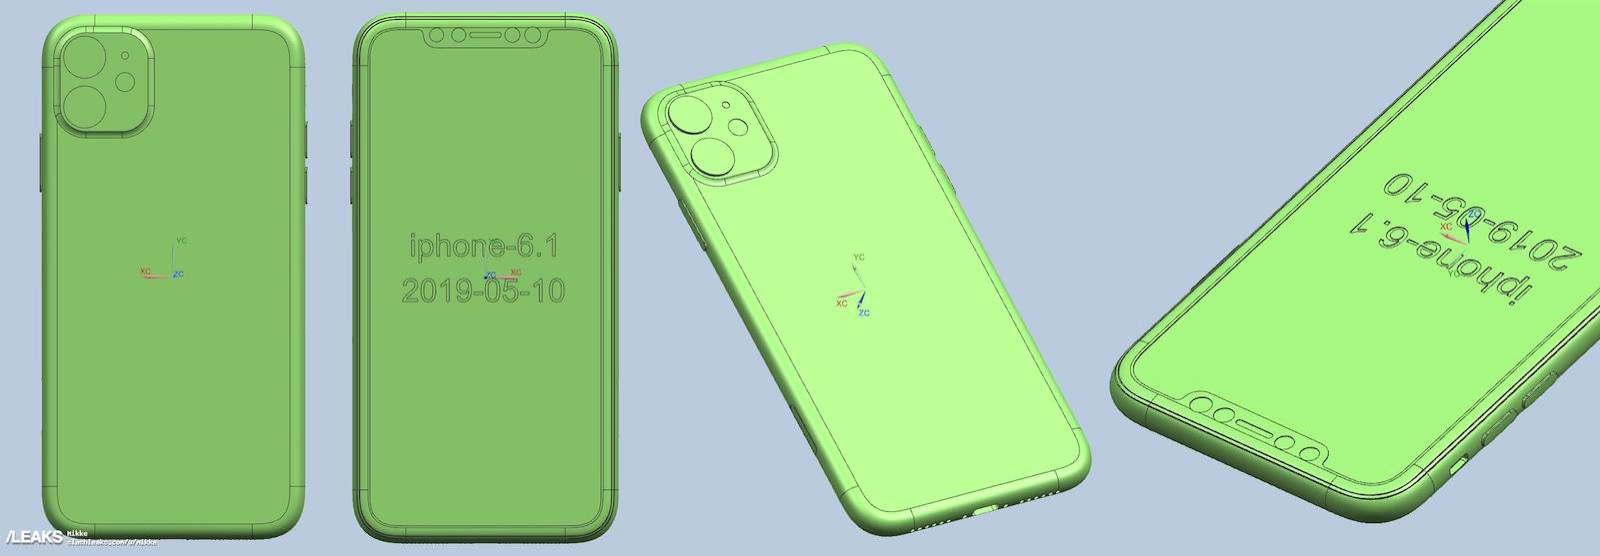 Iphone xir cad